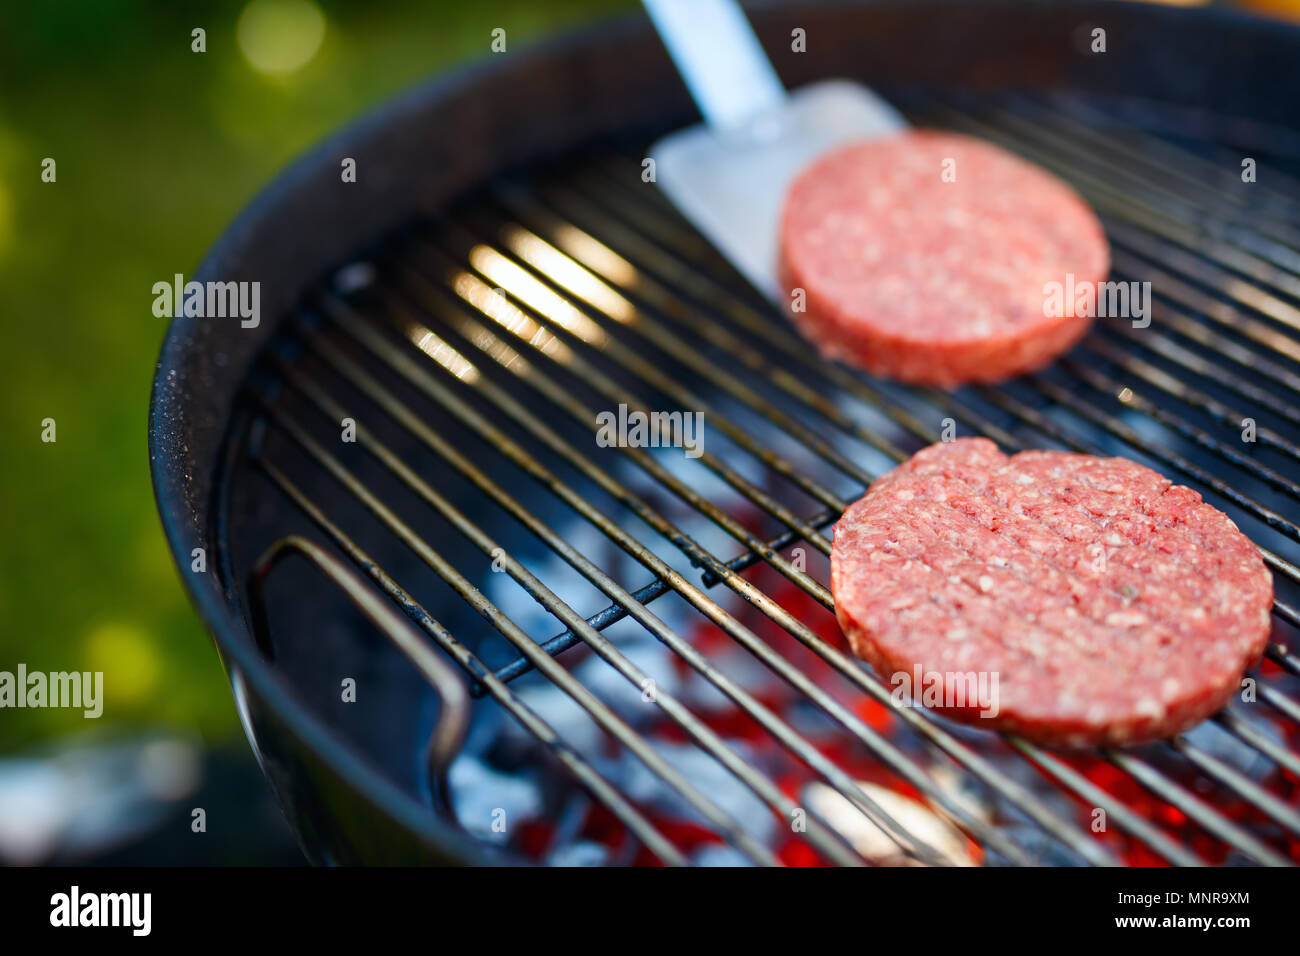 Grilling burger meat cutlets for homemade burger cooking outdoors on summer day - Stock Image